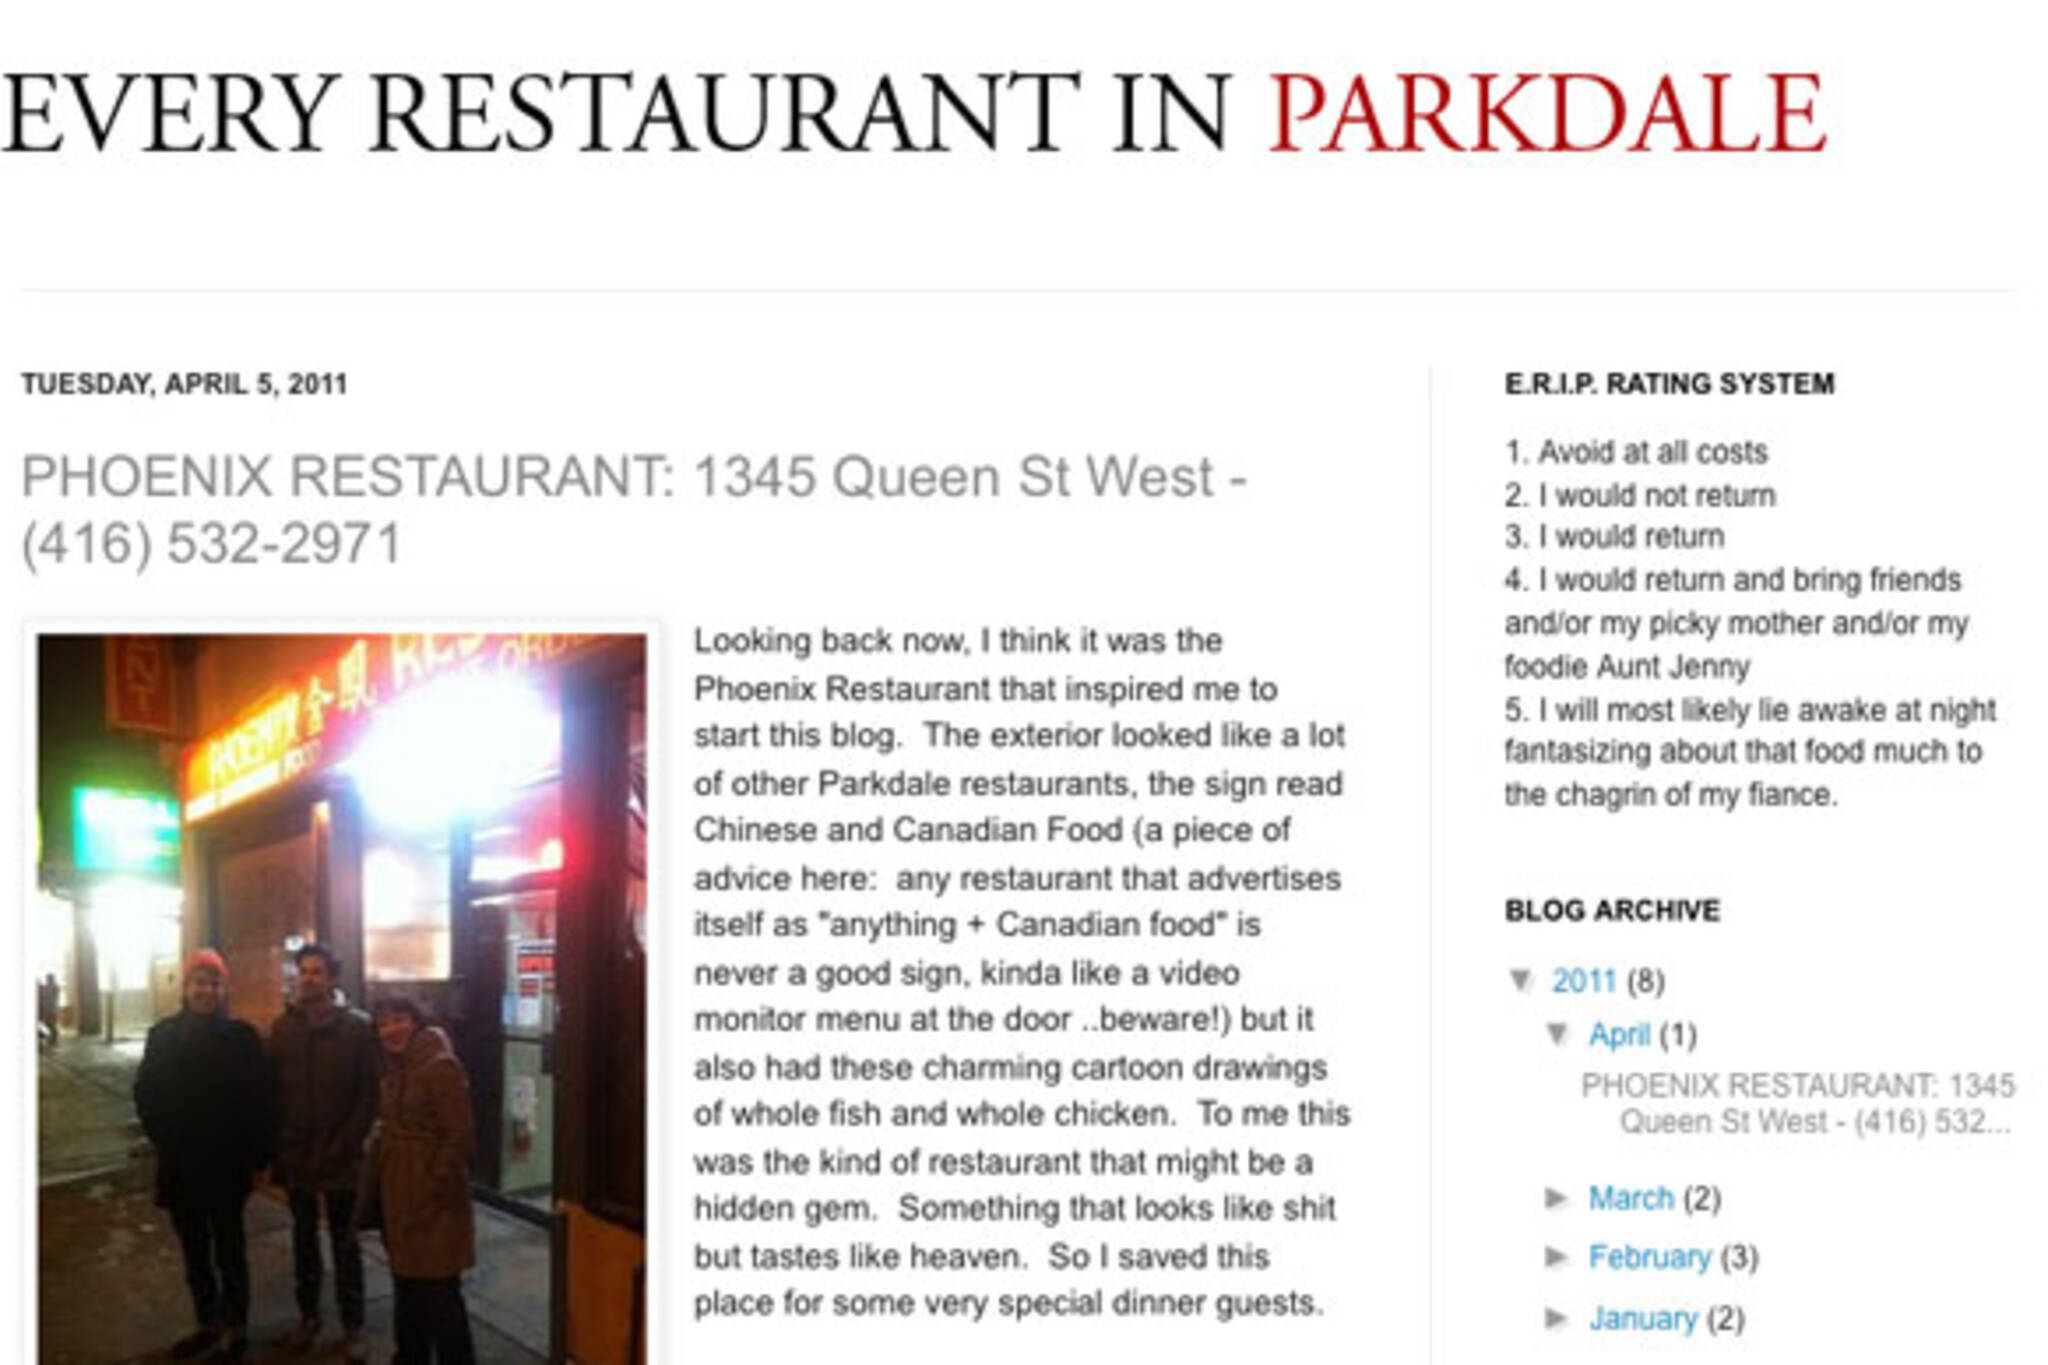 Every restaurant in Parkdale